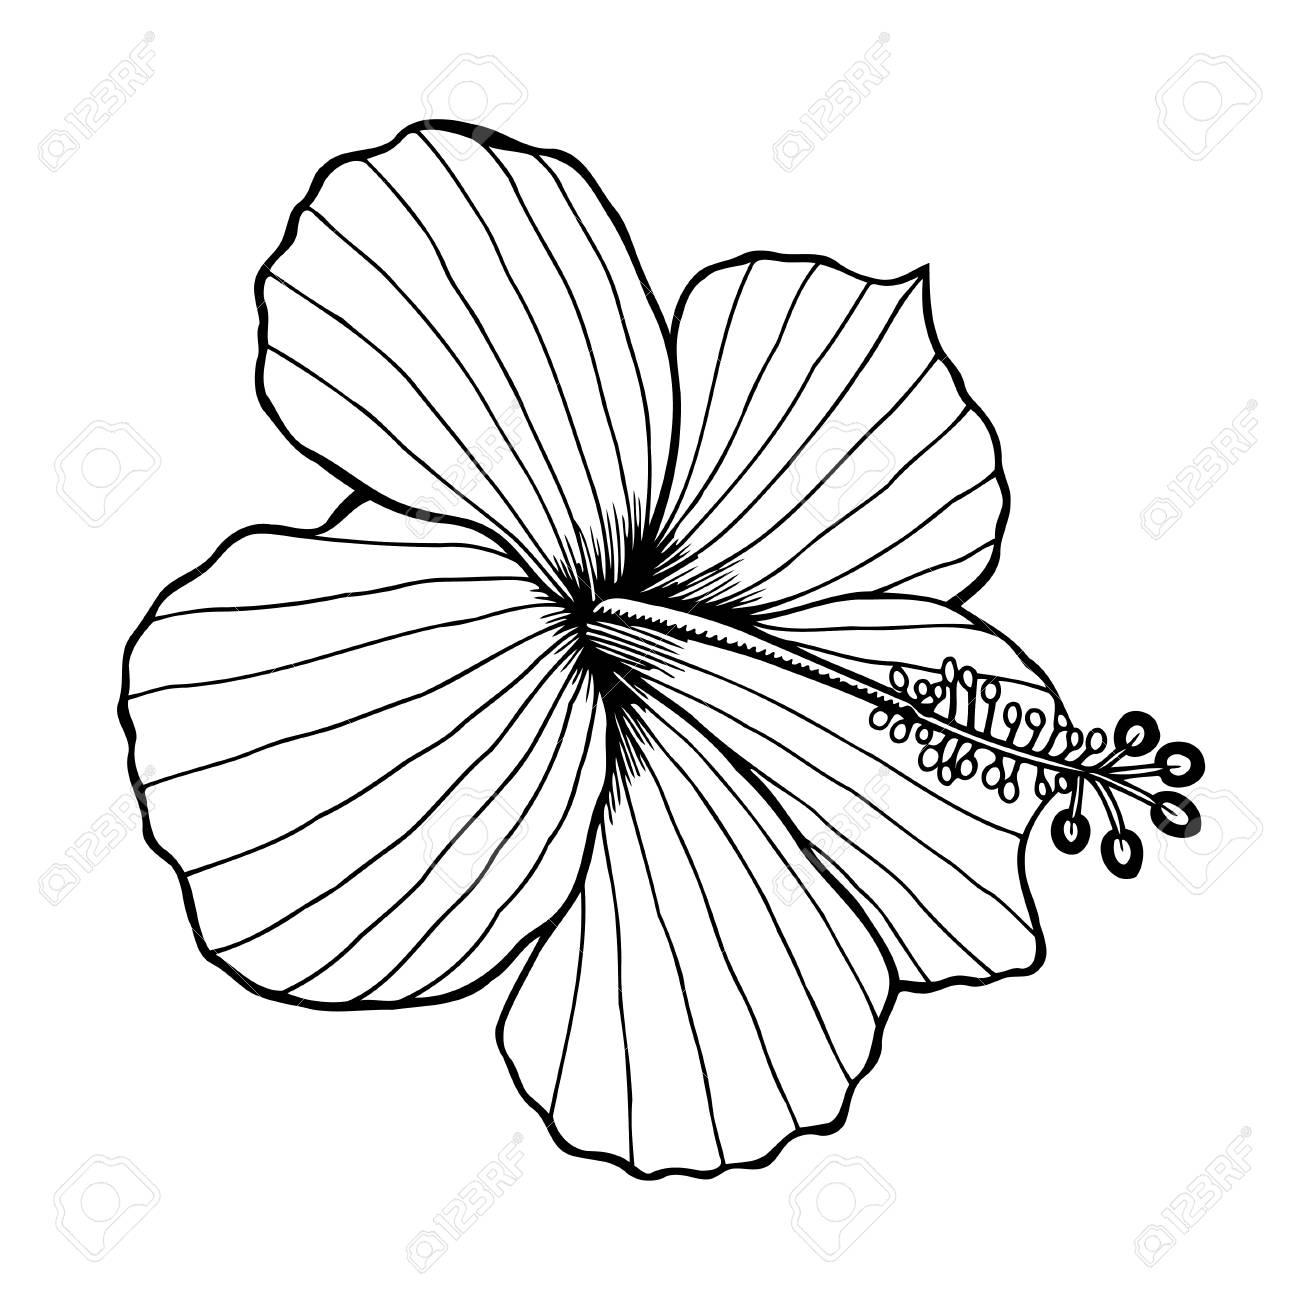 Hibiscus Flower Vector Graphic Illustration Black Image Isolated